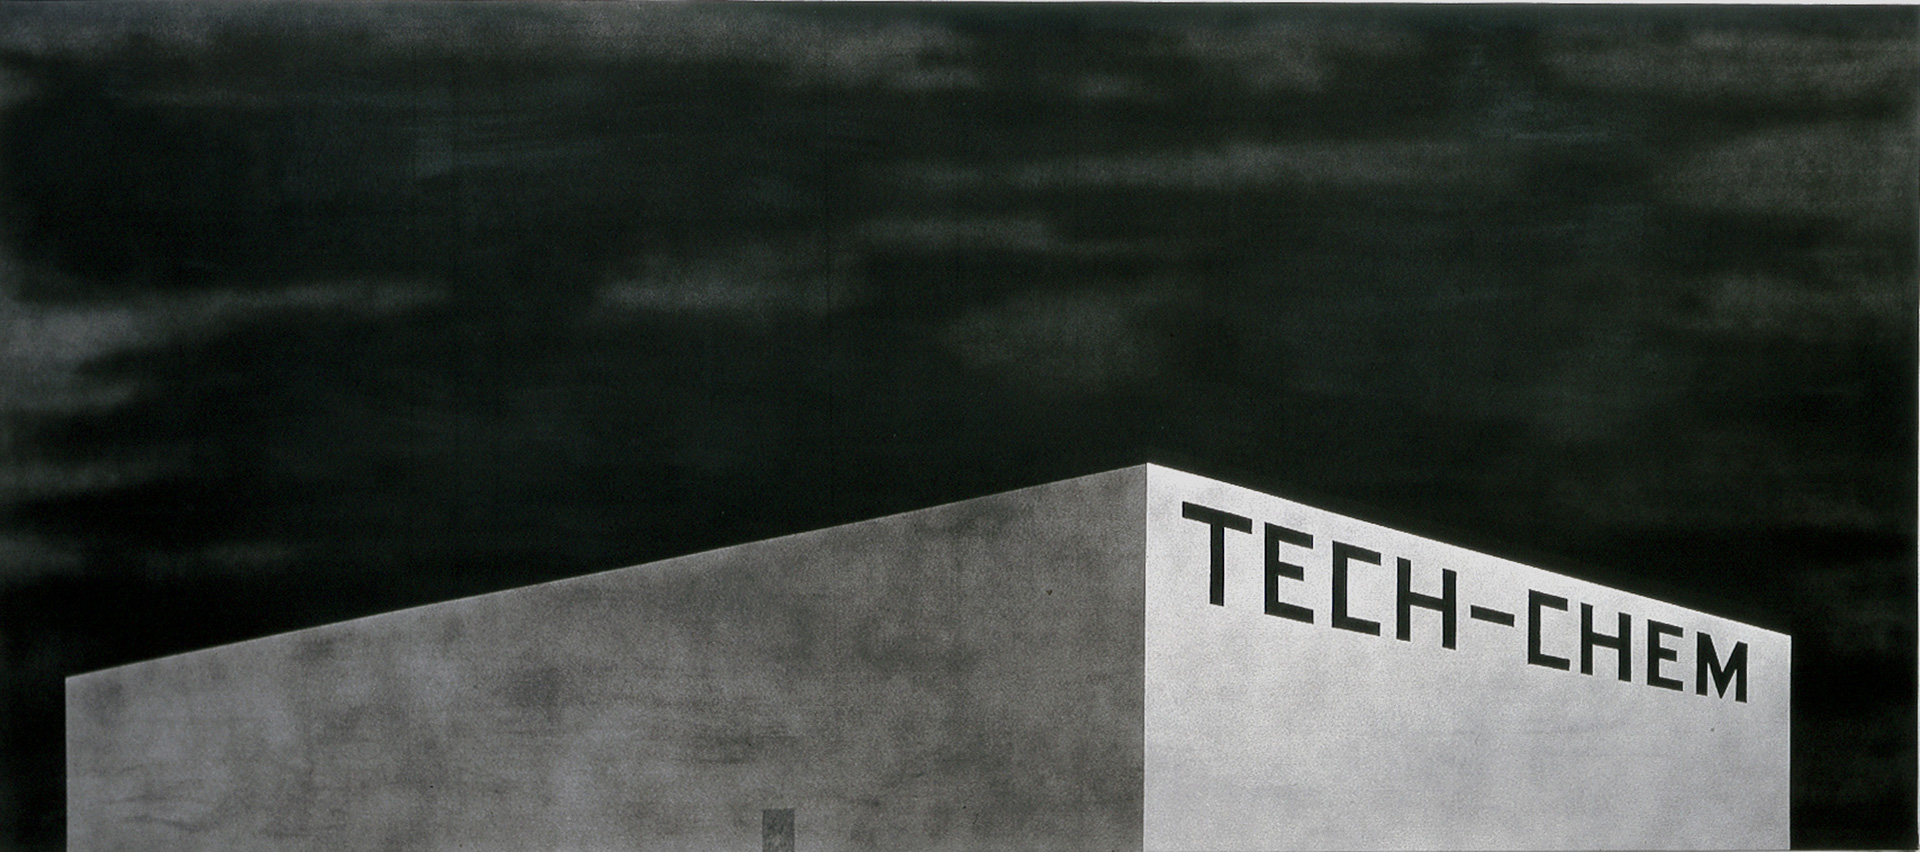 ruscha_blue_collar_tech_chem